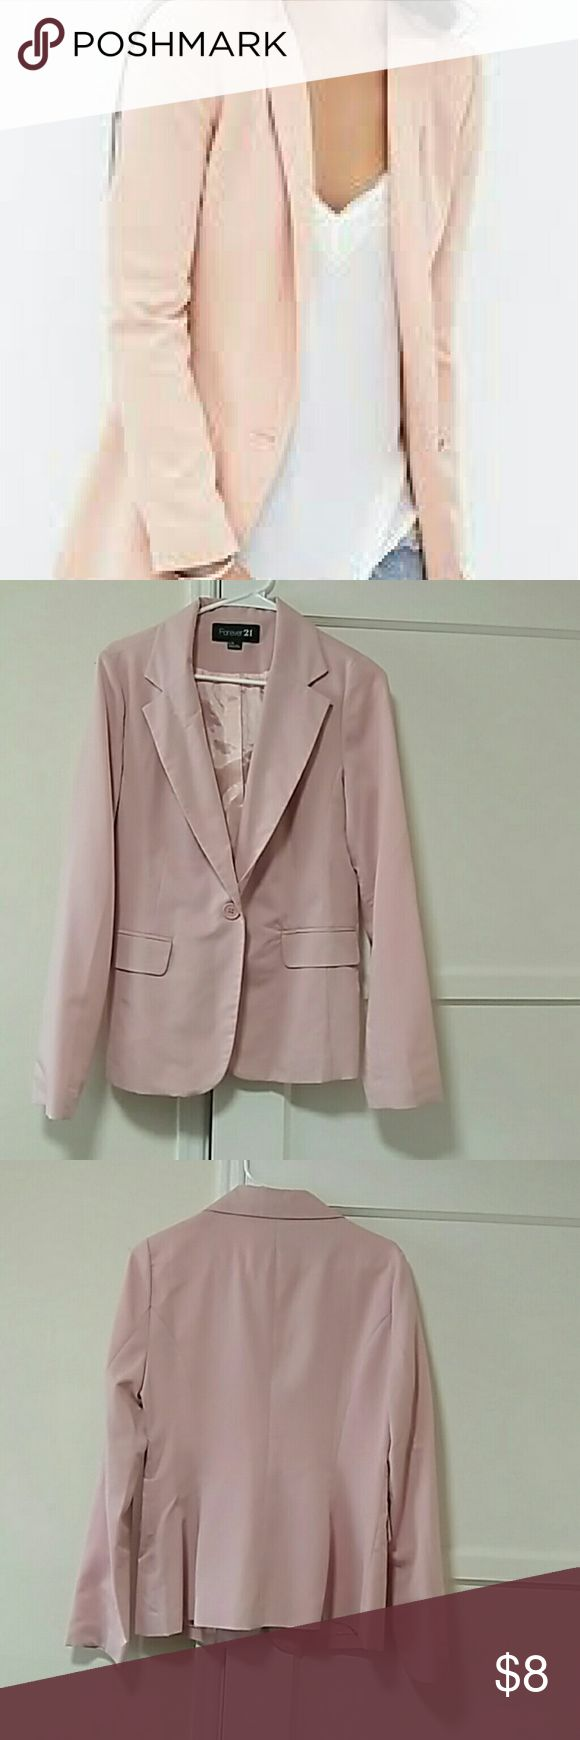 Forever 21 Nice women suit jacket good condition Forever 21 Jackets & Coats